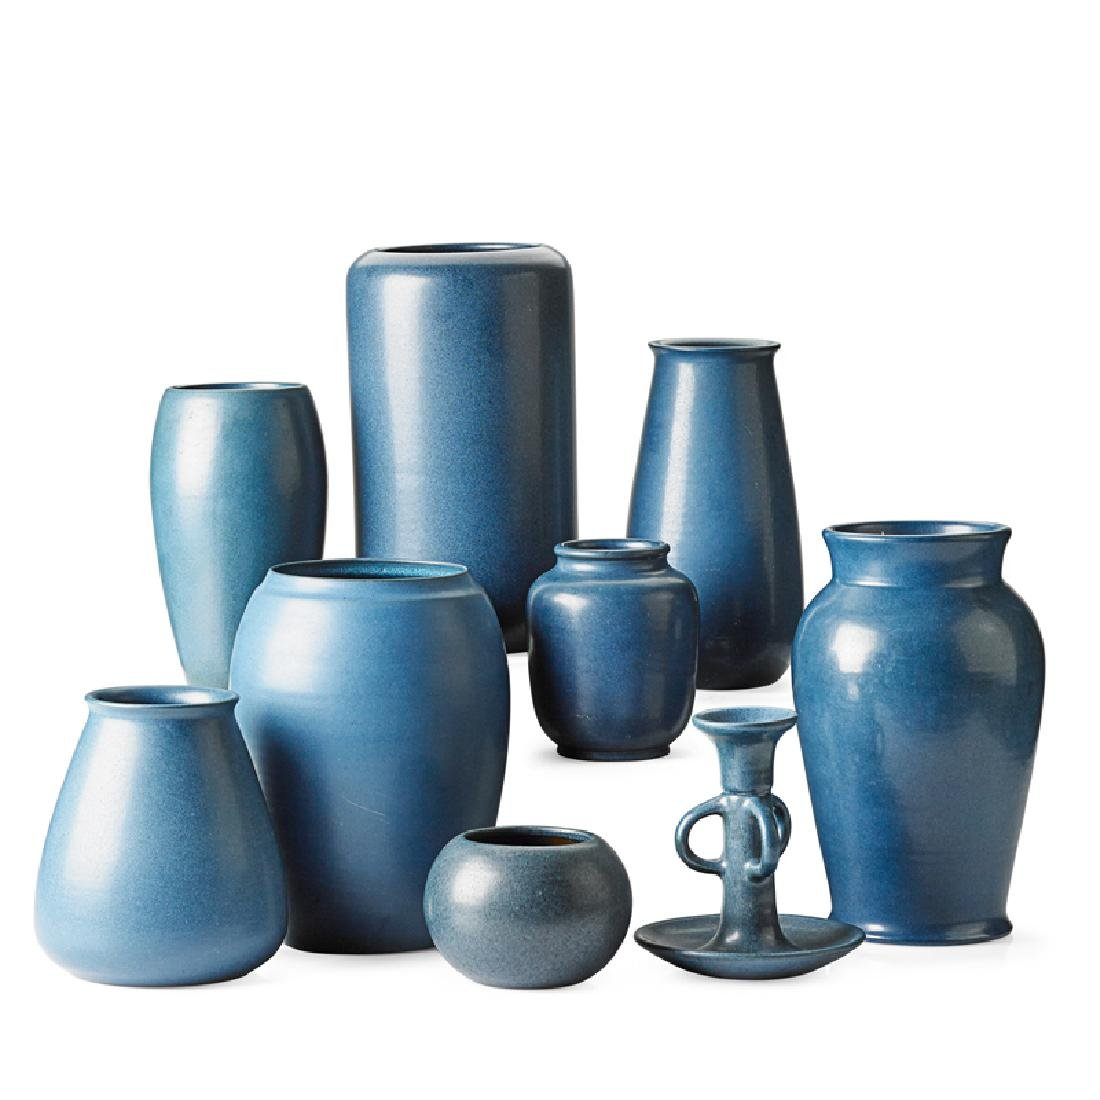 MARBLEHEAD Eight blue vases, one candlestick